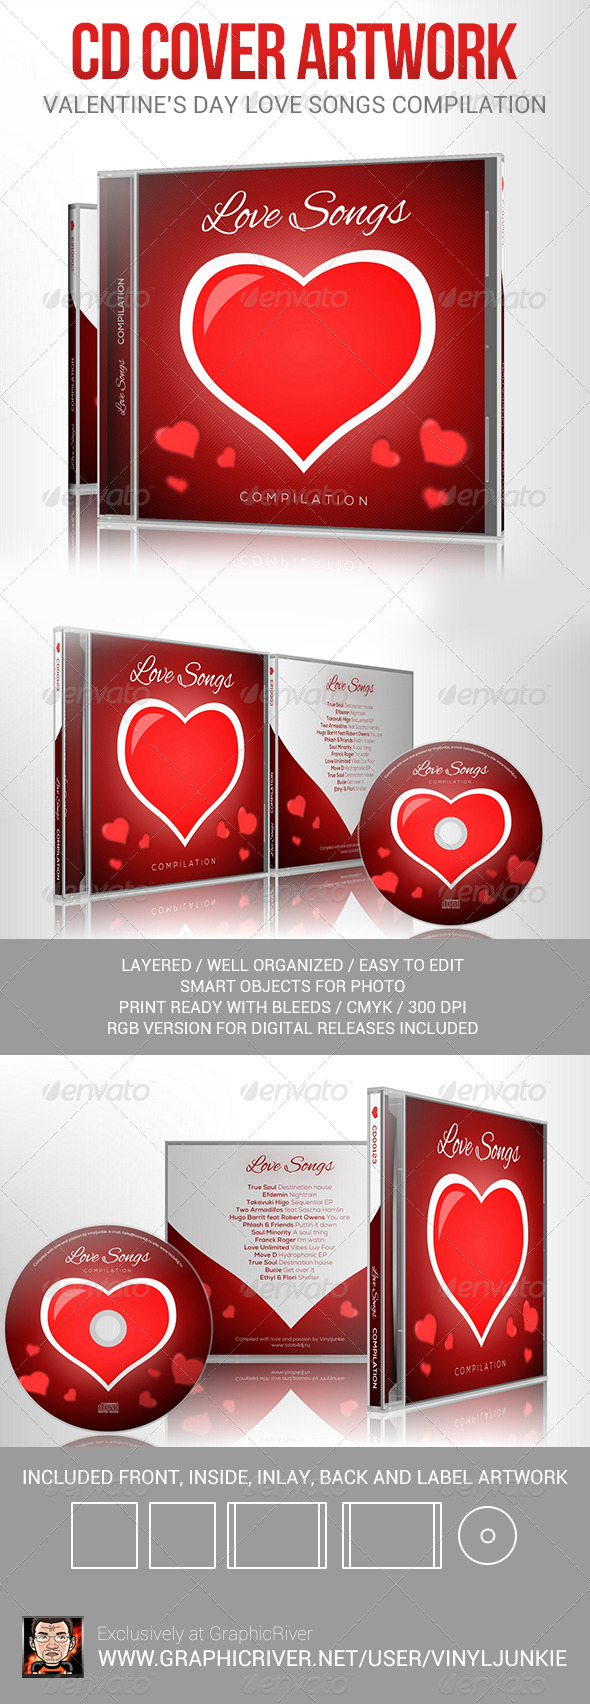 Love Songs for Valentine's Day CD Cover Artwork - CD & DVD Artwork Print Templates